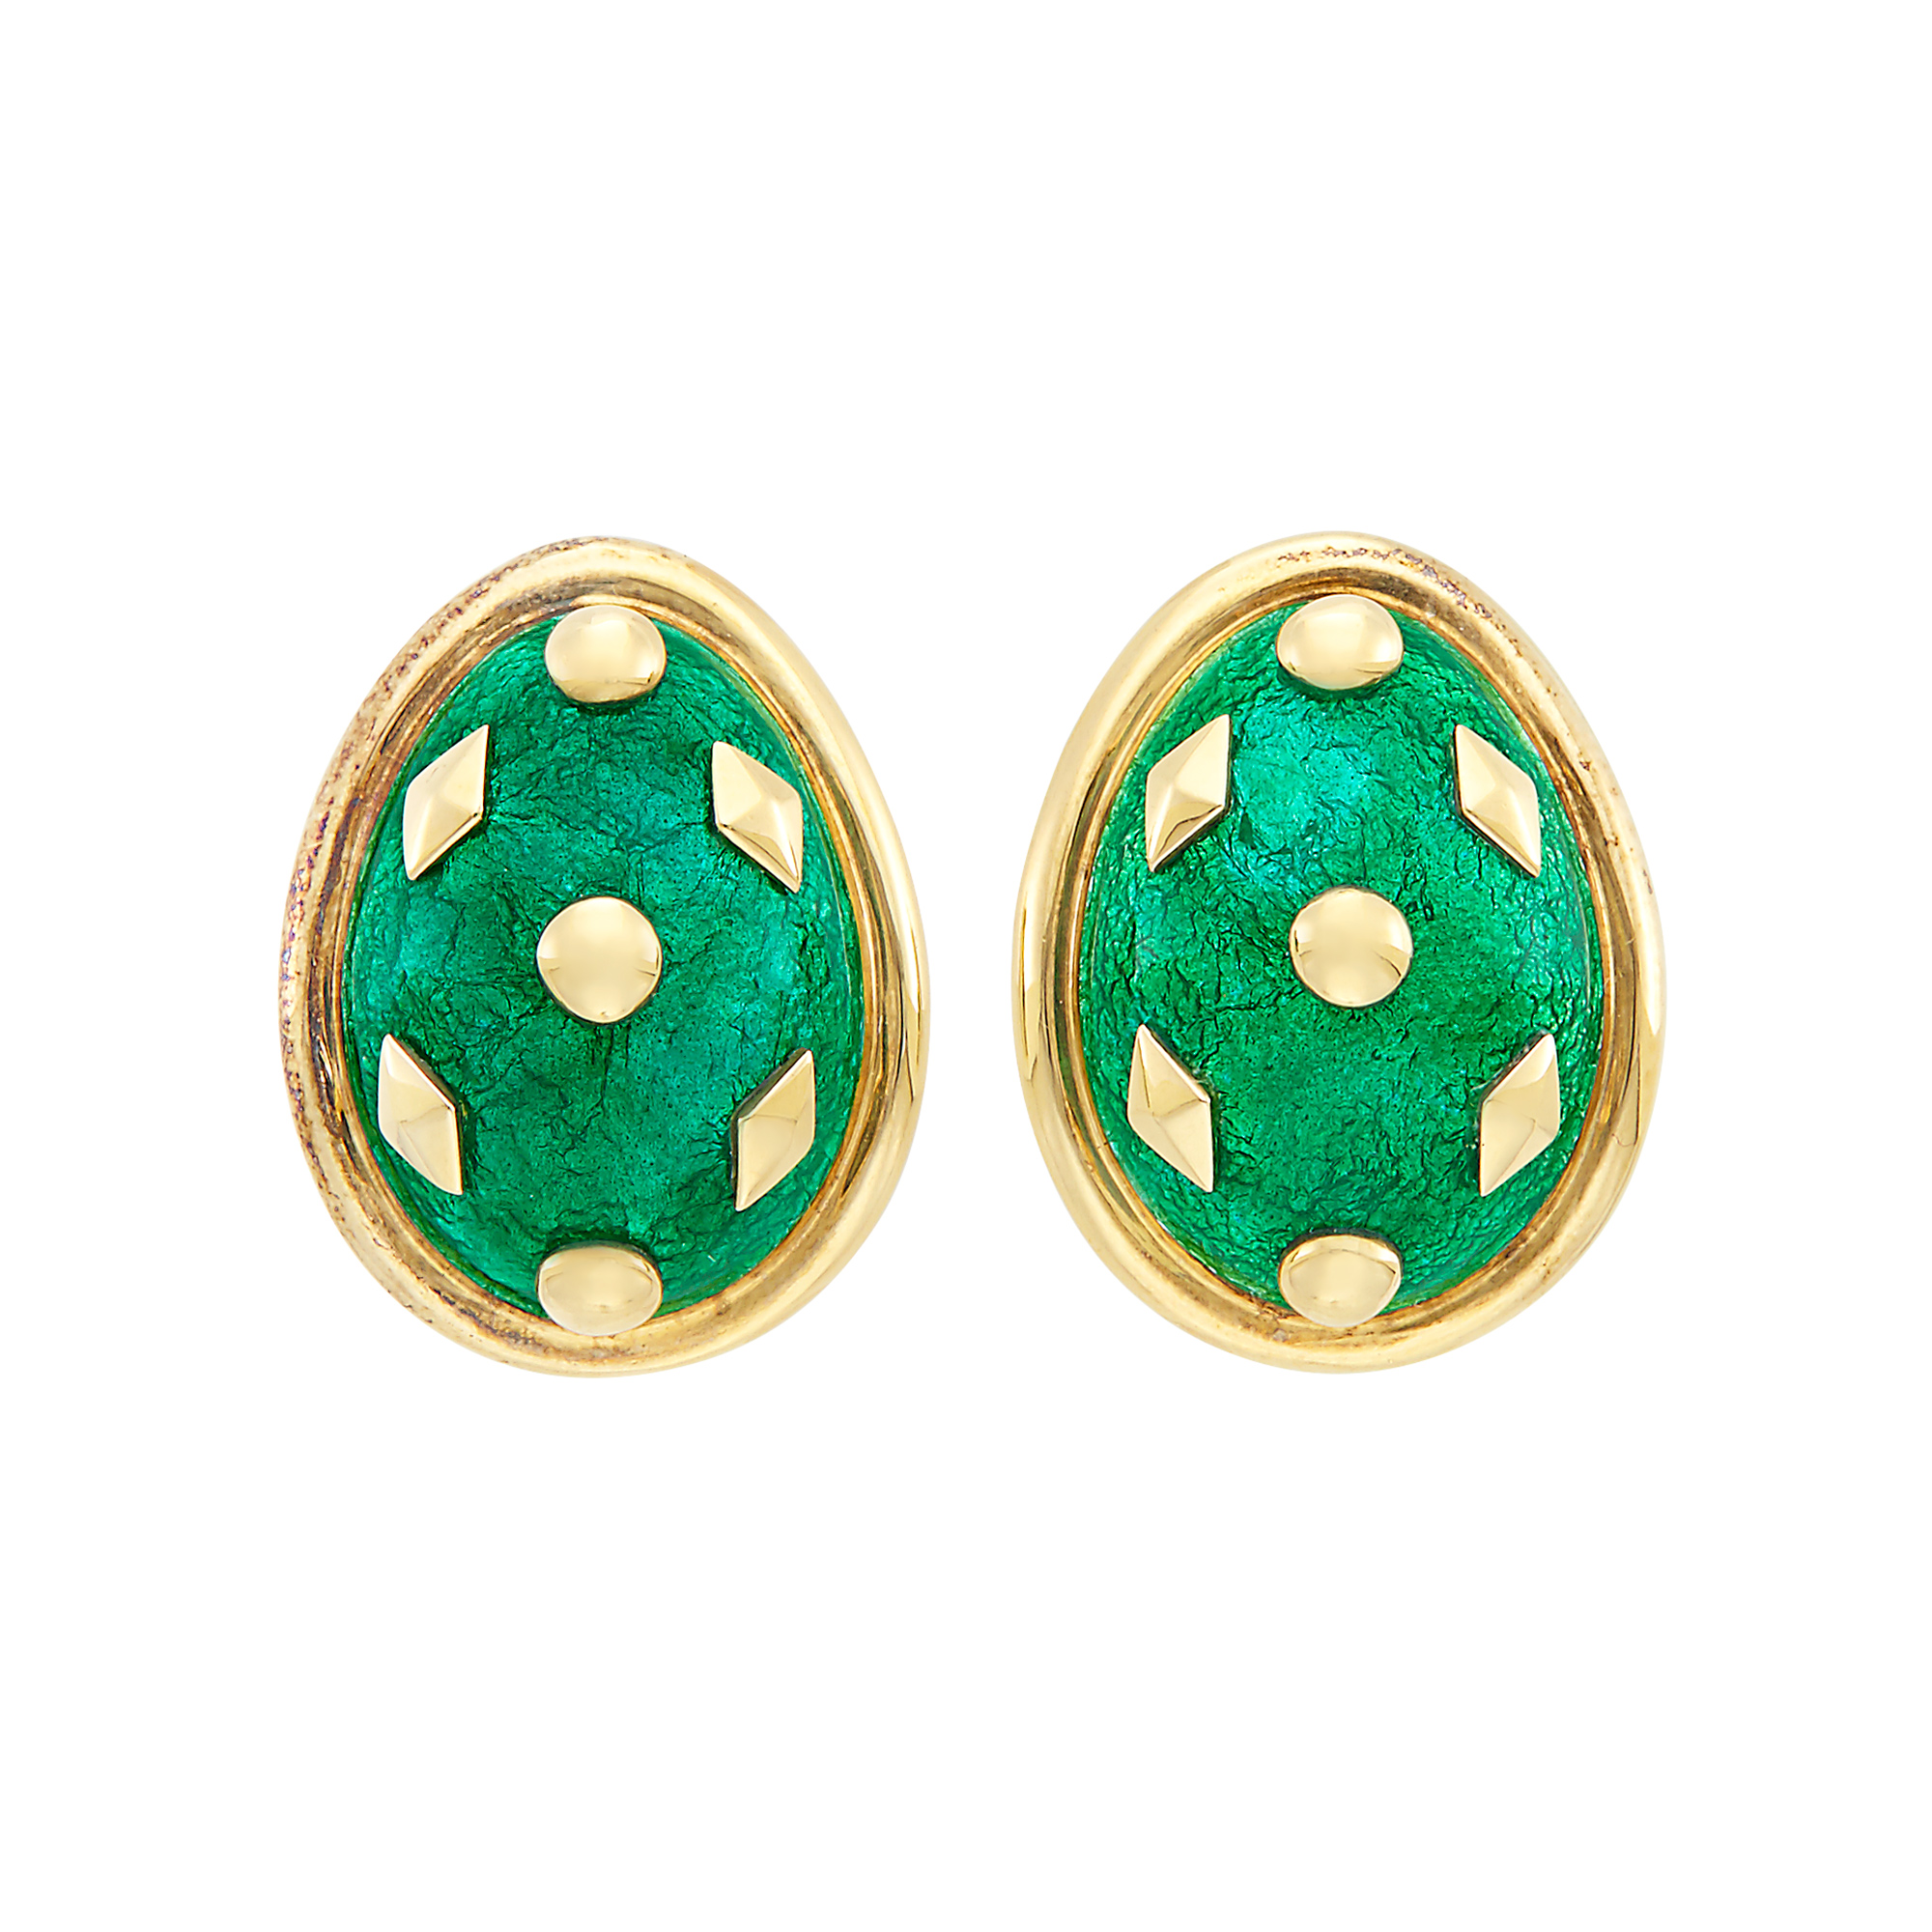 Lot image - Pair of Gold and Green Paillonné Enamel Earclips, Tiffany & Co., Schlumberger